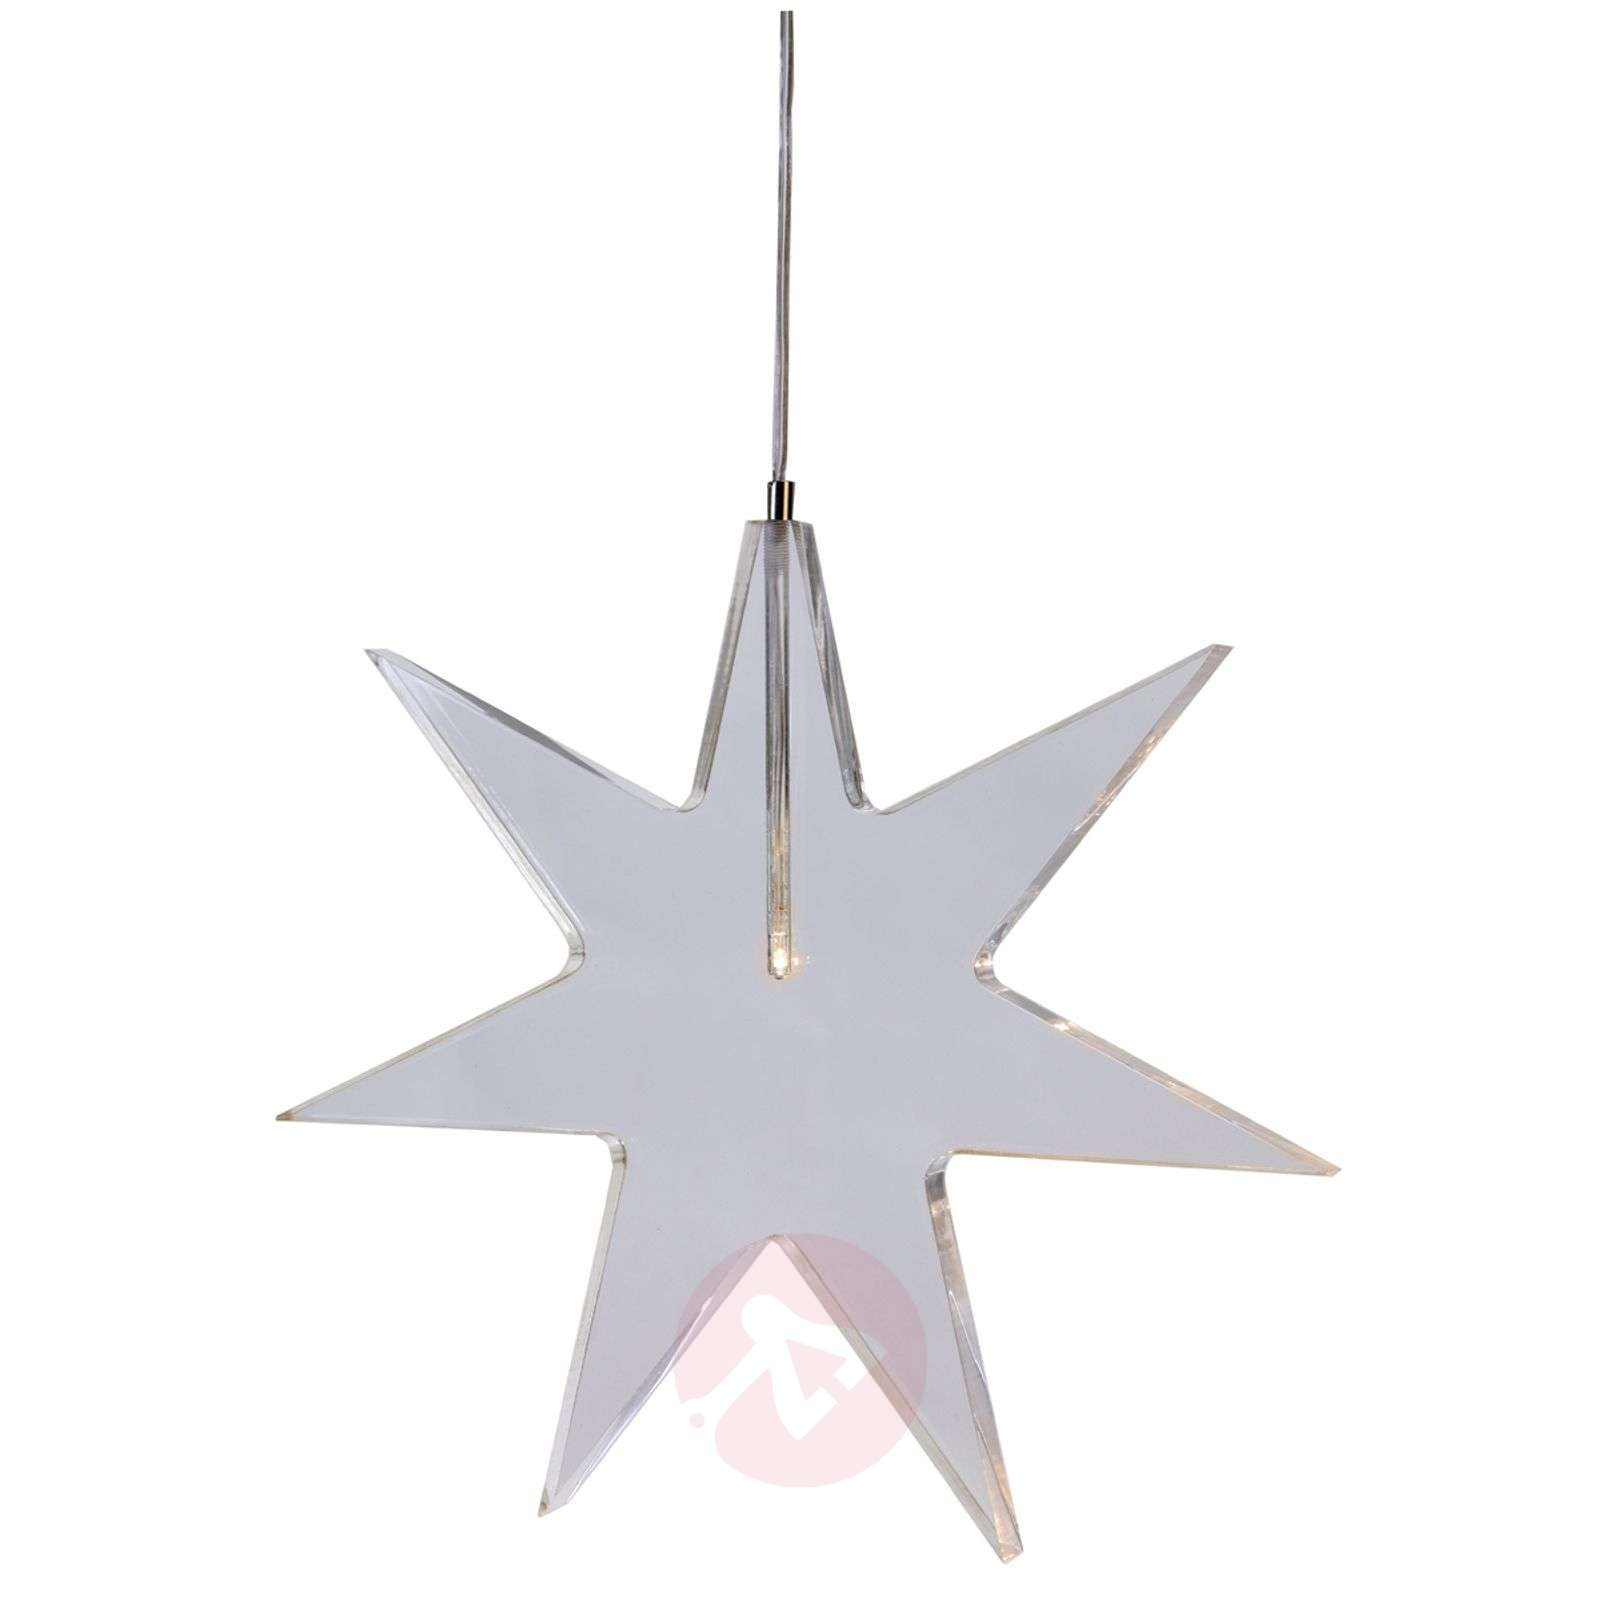 Estrella LED transparente lámpara decorativa Karla-1522505-01